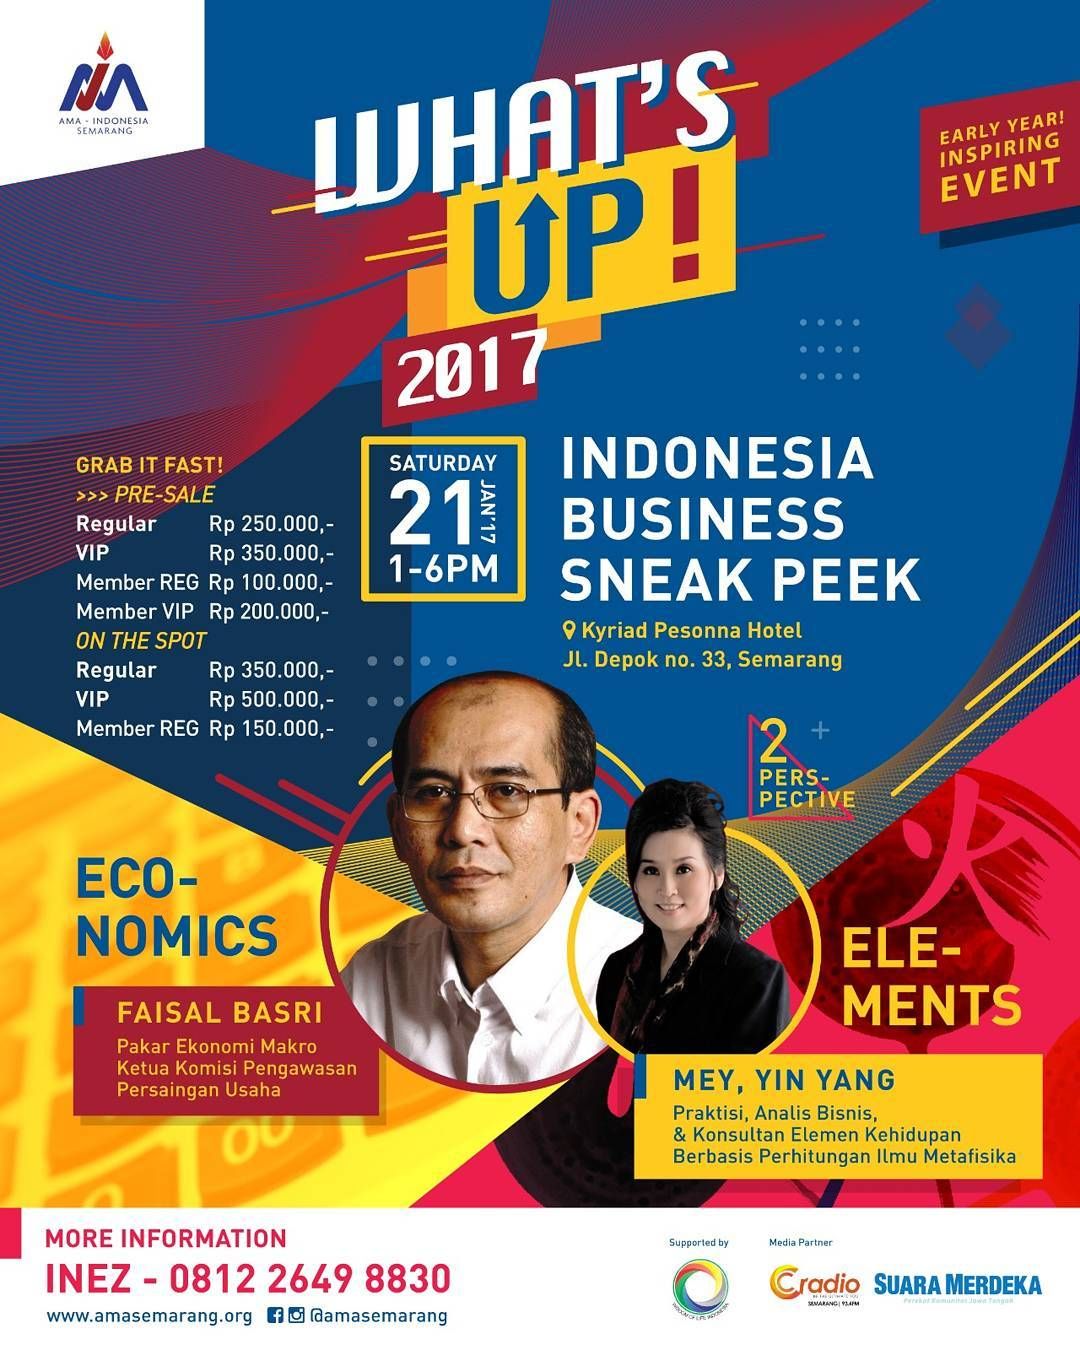 What's Up!2017 : Indonesia Business Sneak Peek - Kyriad Pesonna Hotel Semarang, 21 Januari 2017